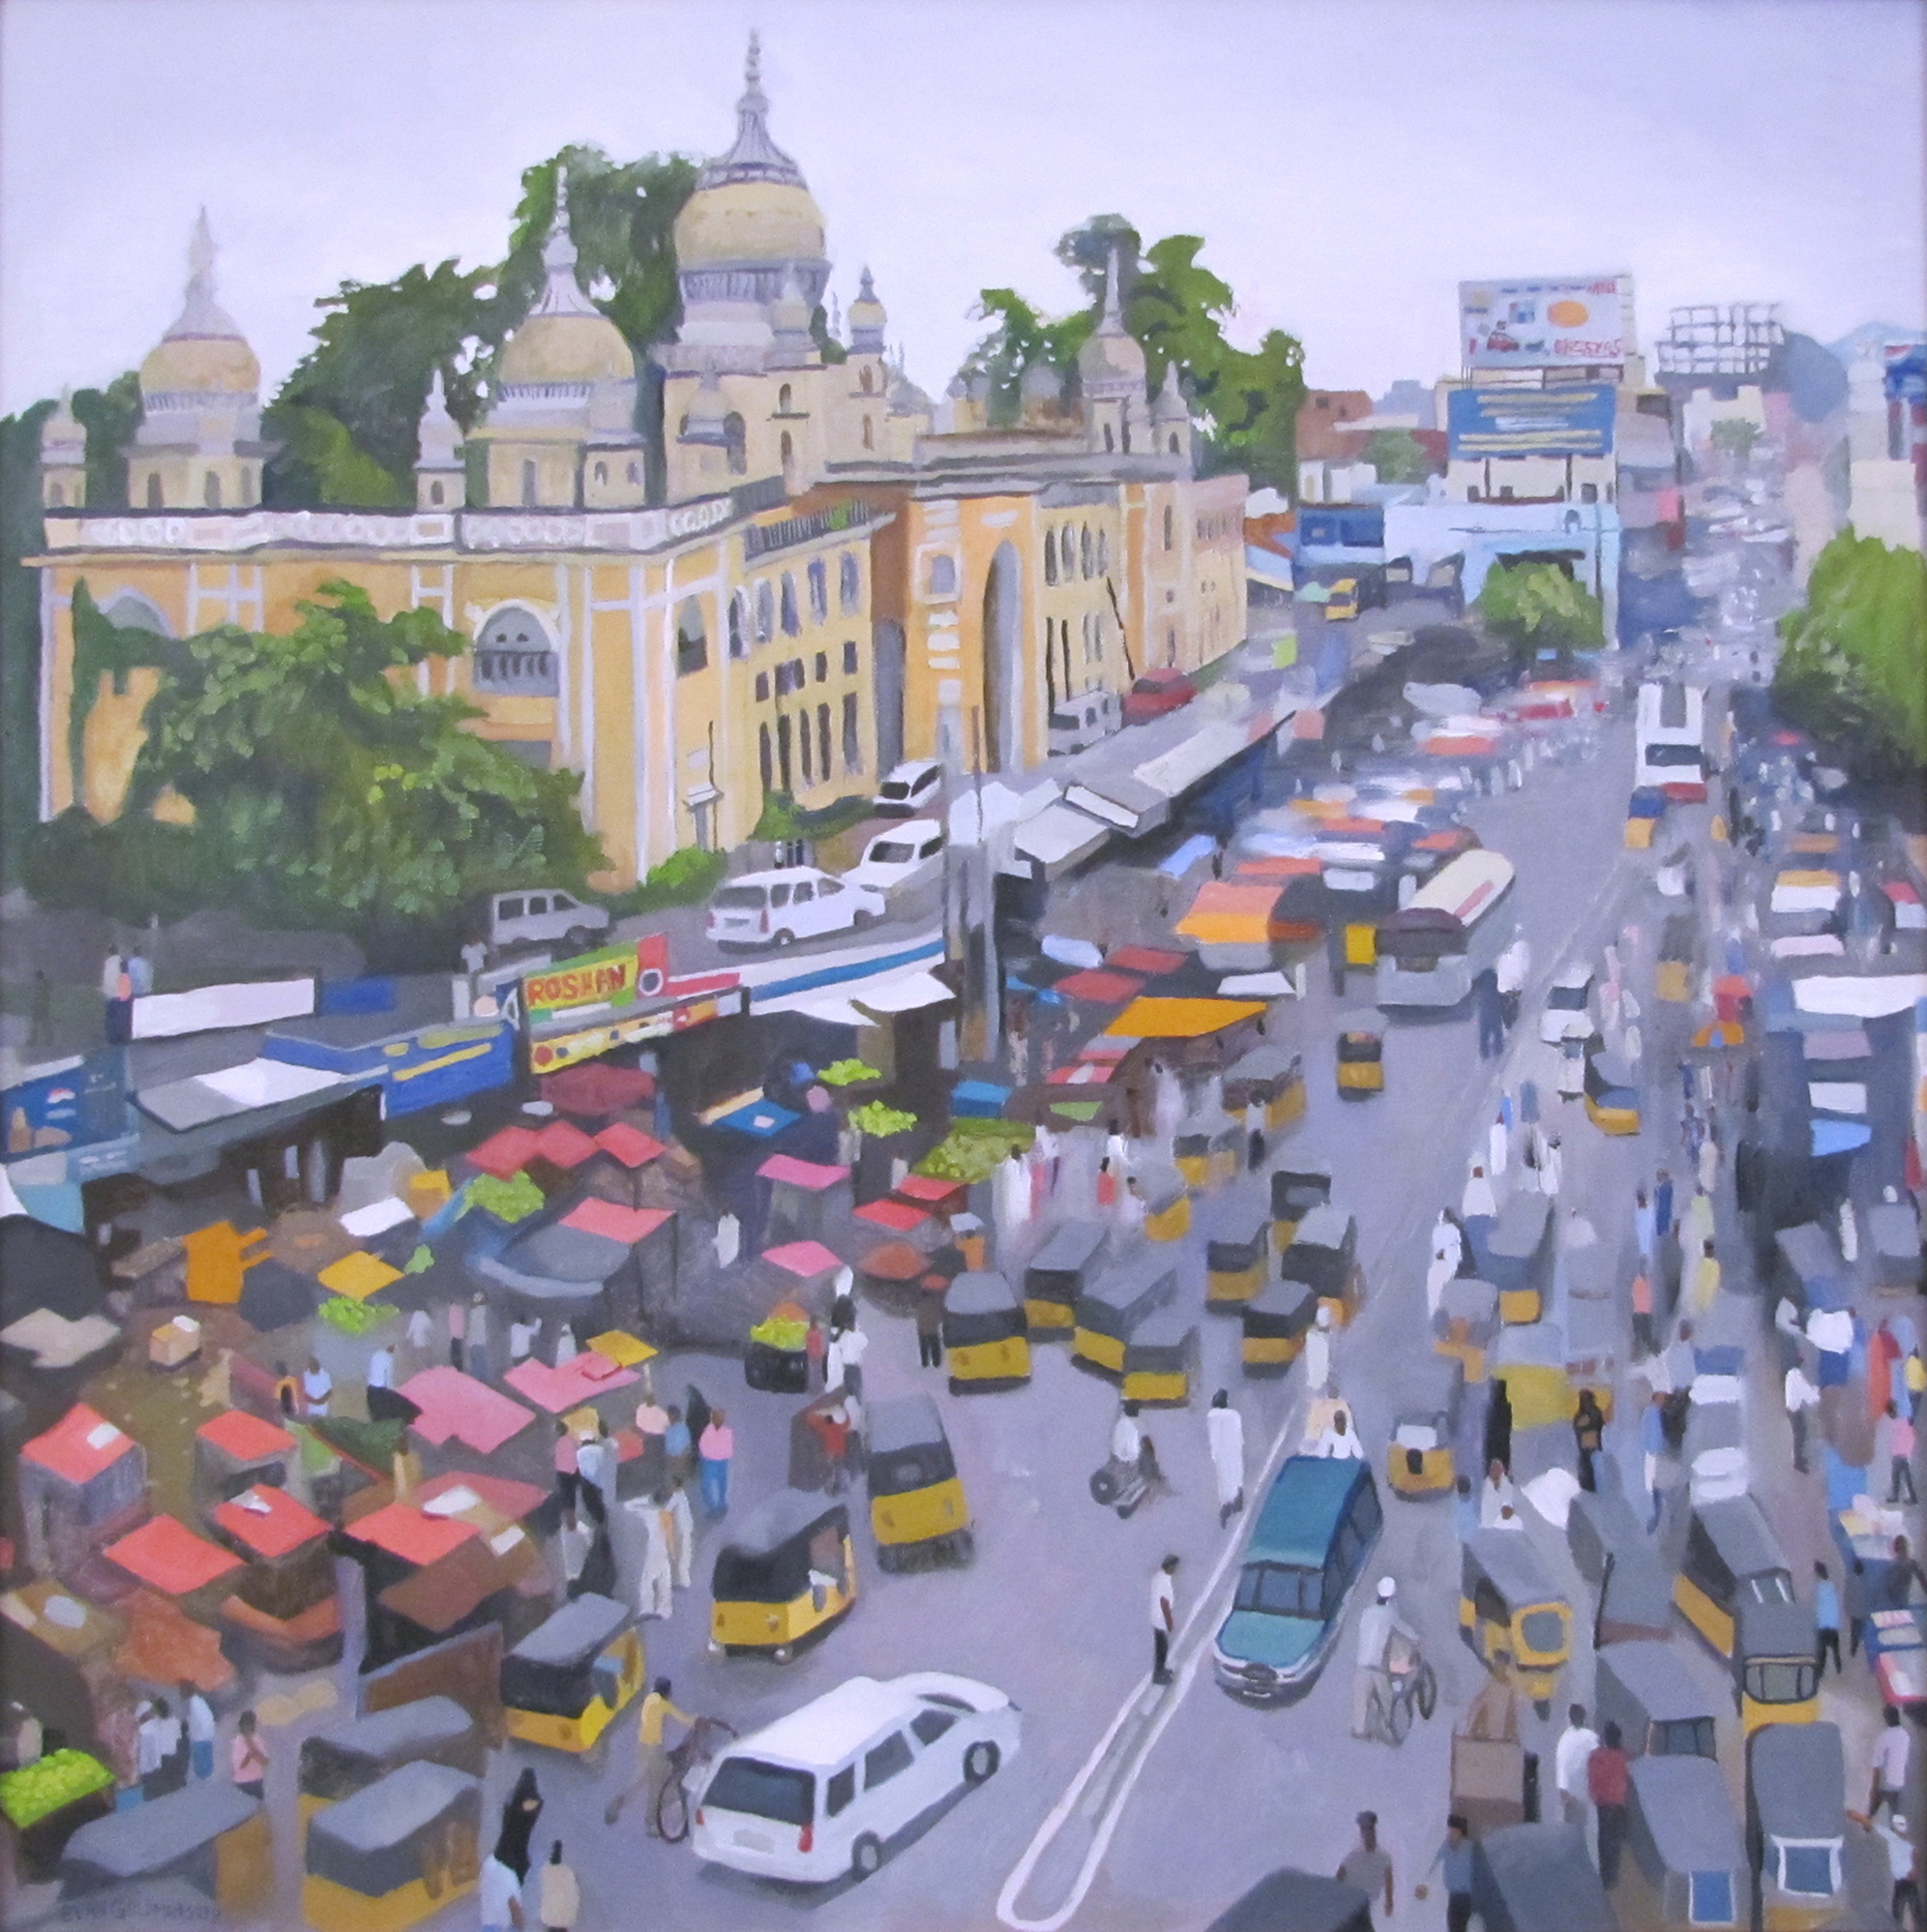 Downtown Hyderabad (India)